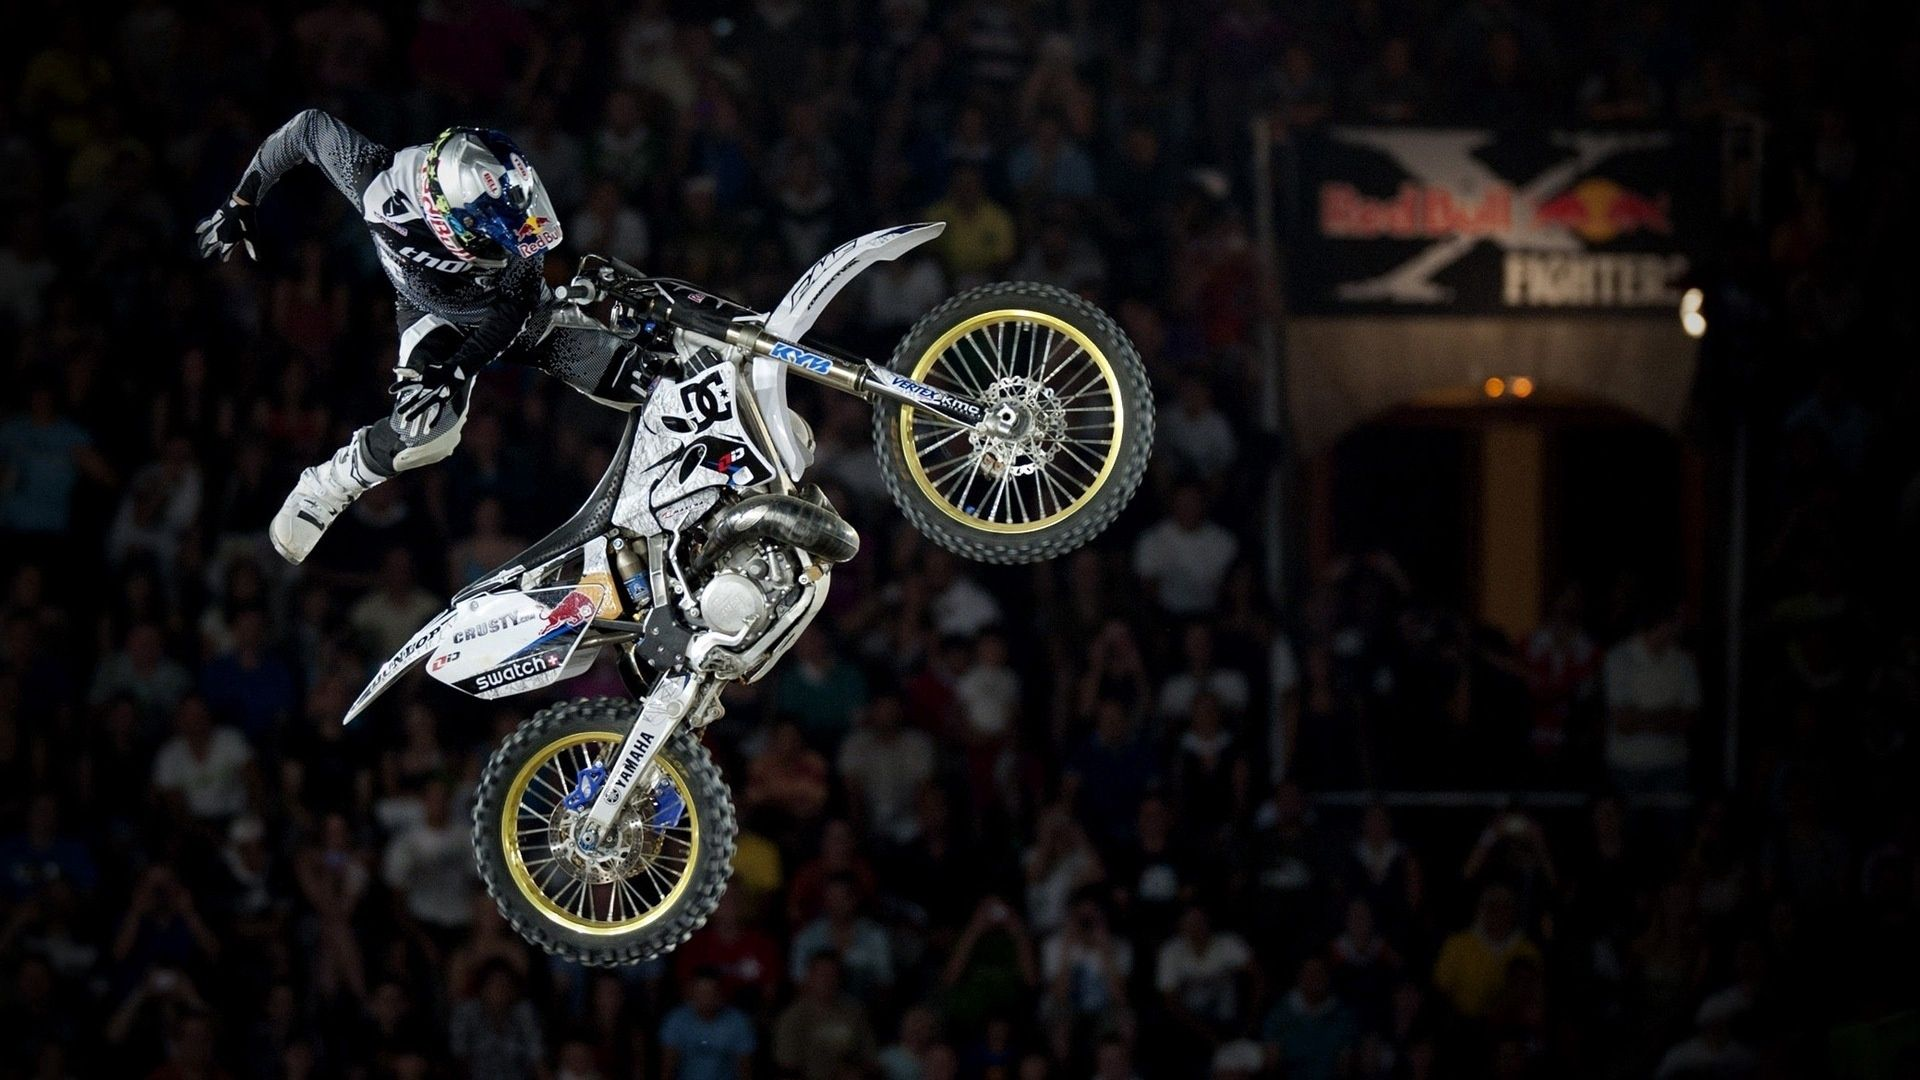 X Fighters, Red, Bull, Jump Wallpapers Free Download